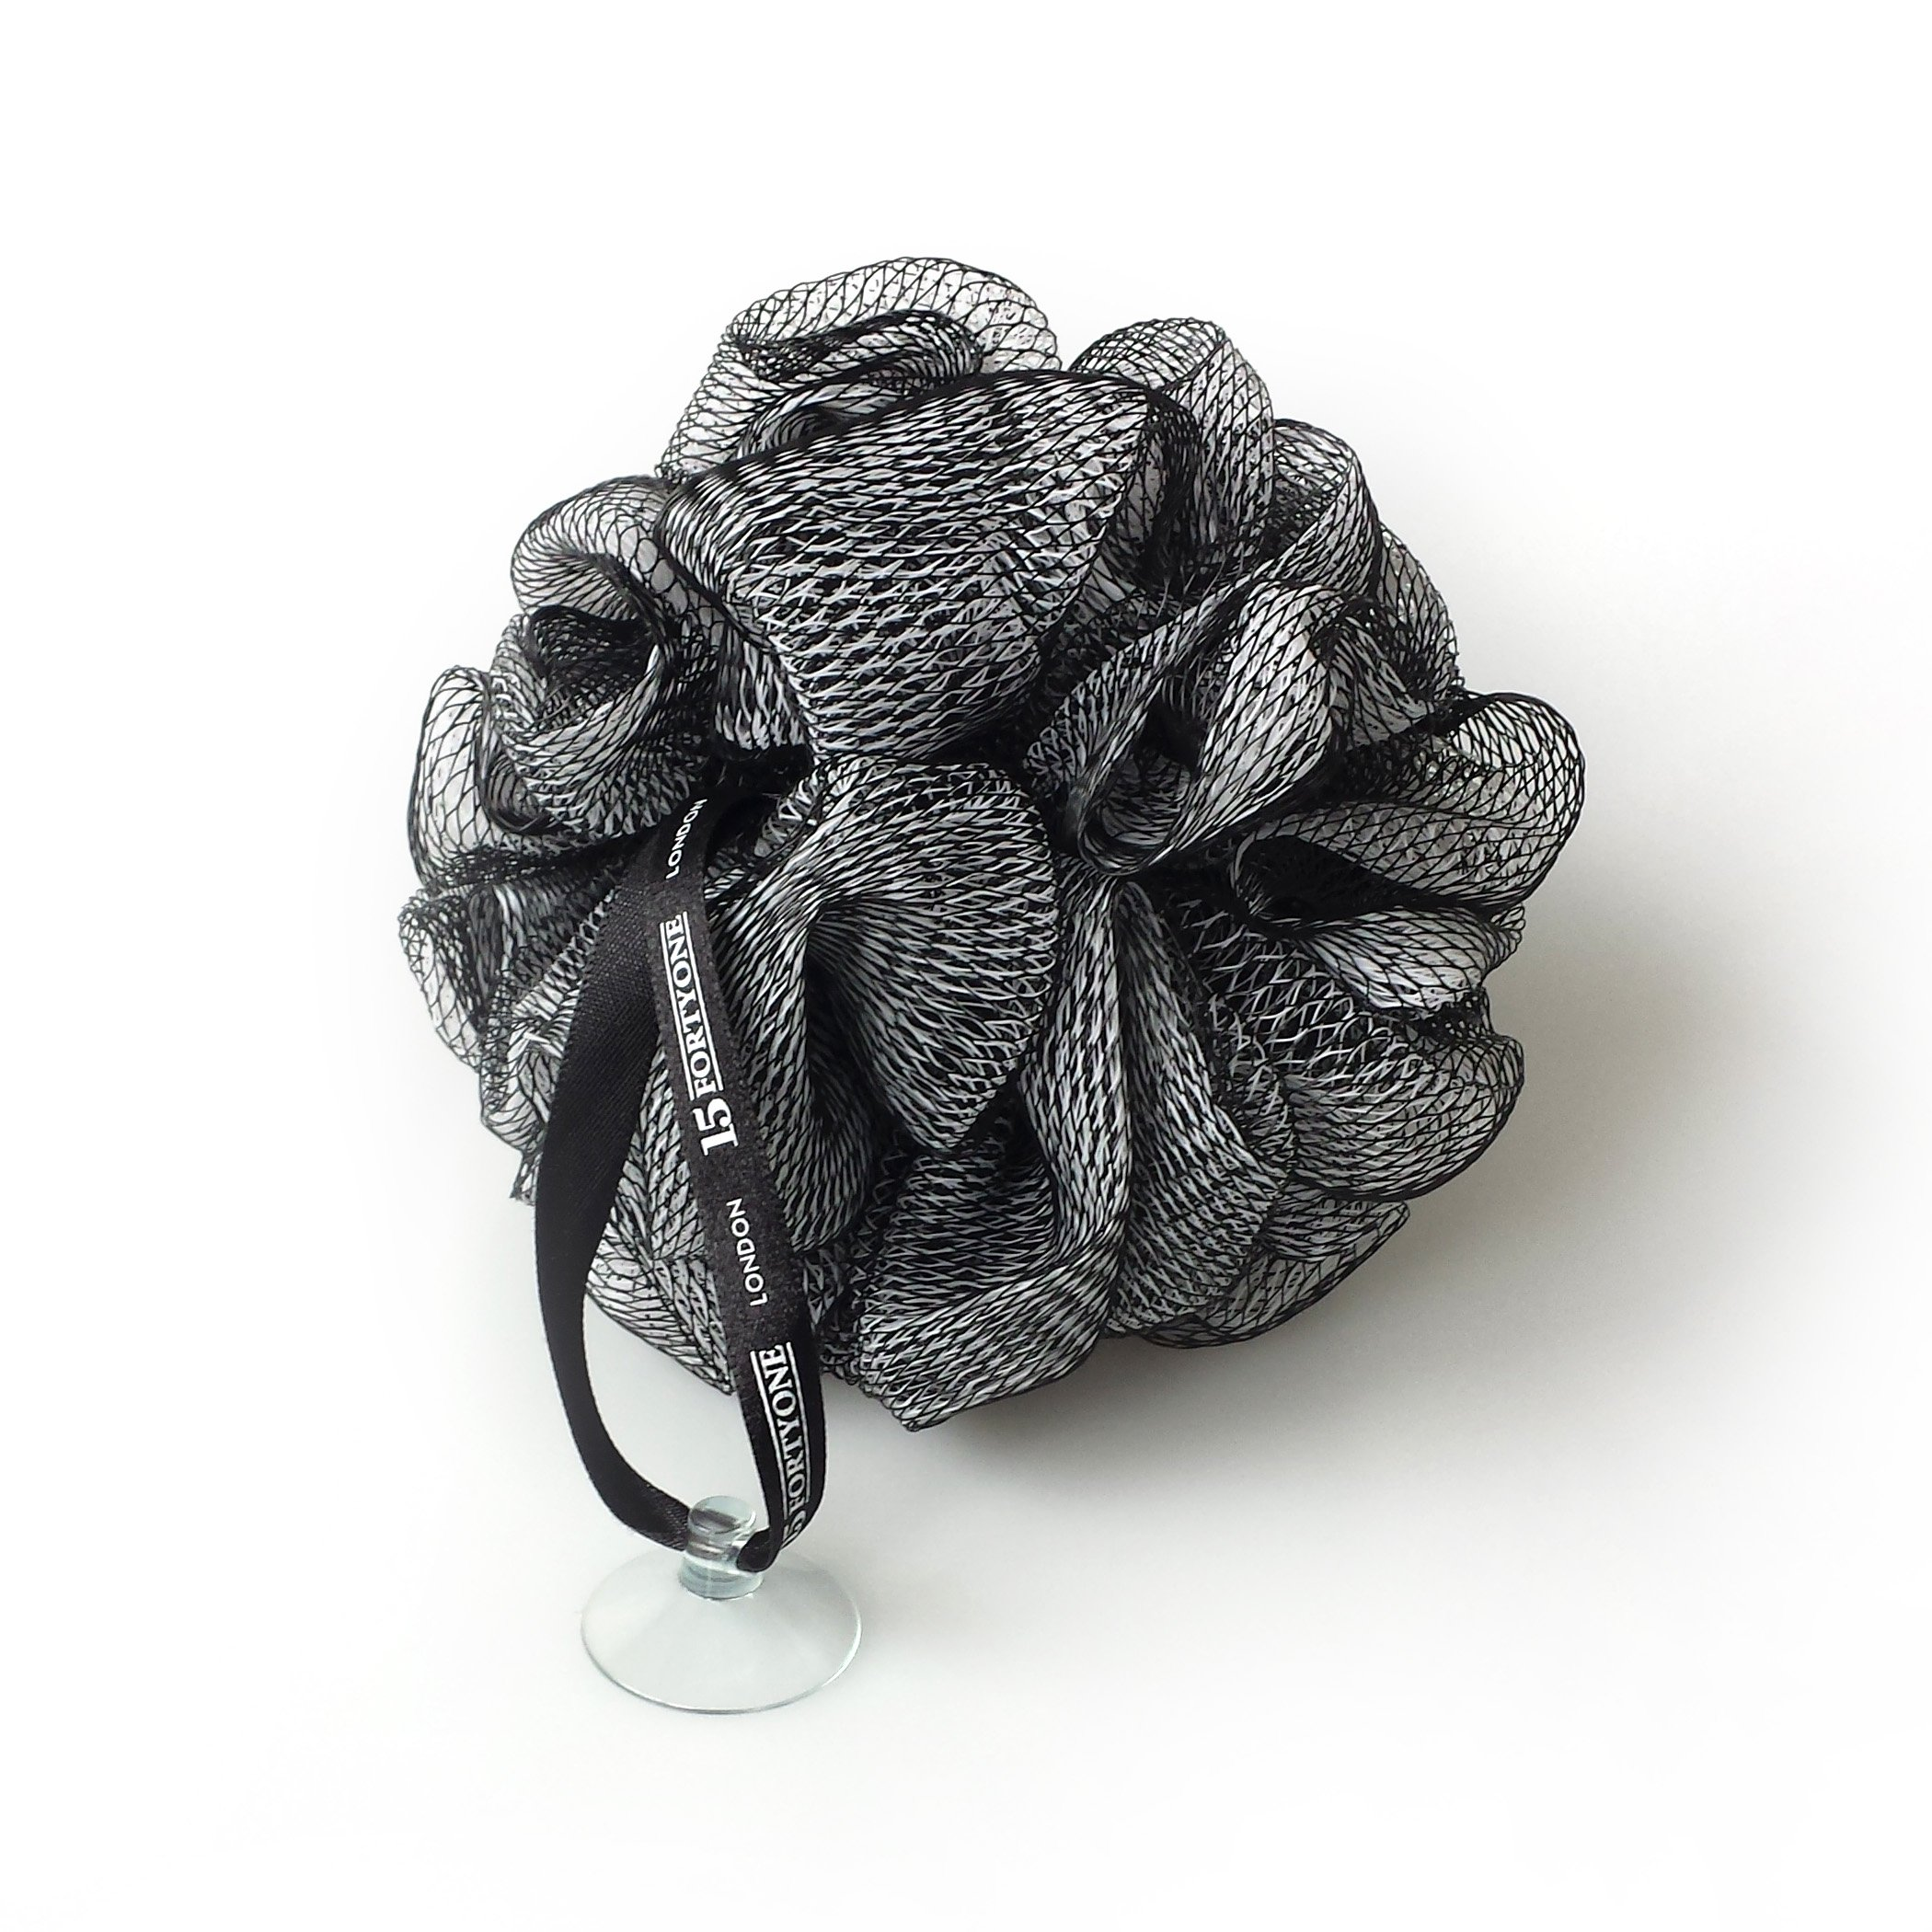 1541 London Exfoliating Bath & Shower Body Puff/Scrunchie/Buffer (Olive Black)